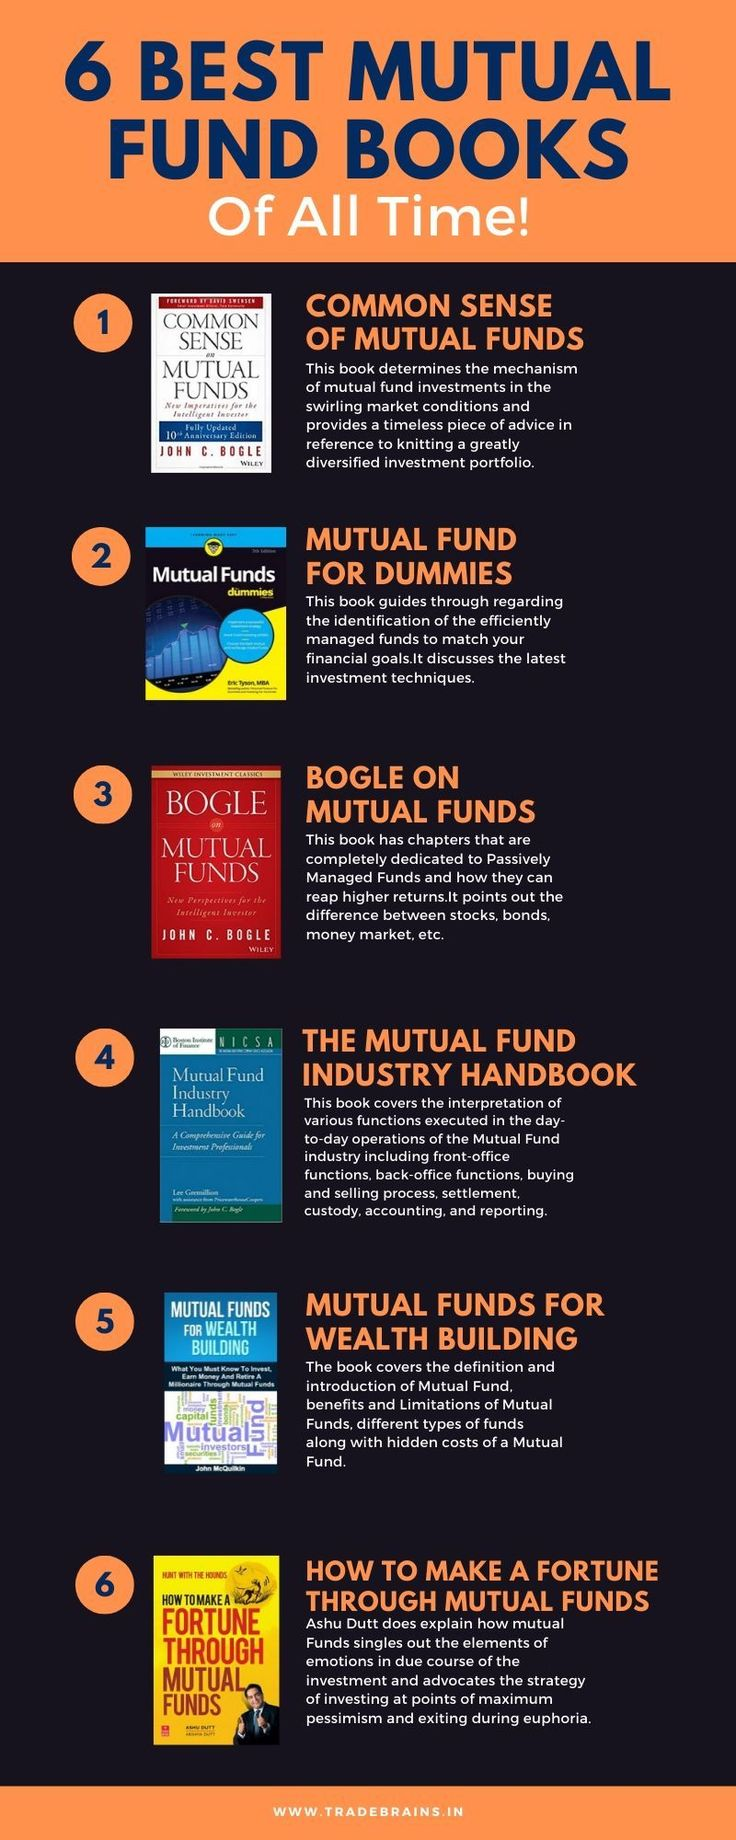 10 Best Mutual Fund Books Of All Time! in 2020 Mutuals